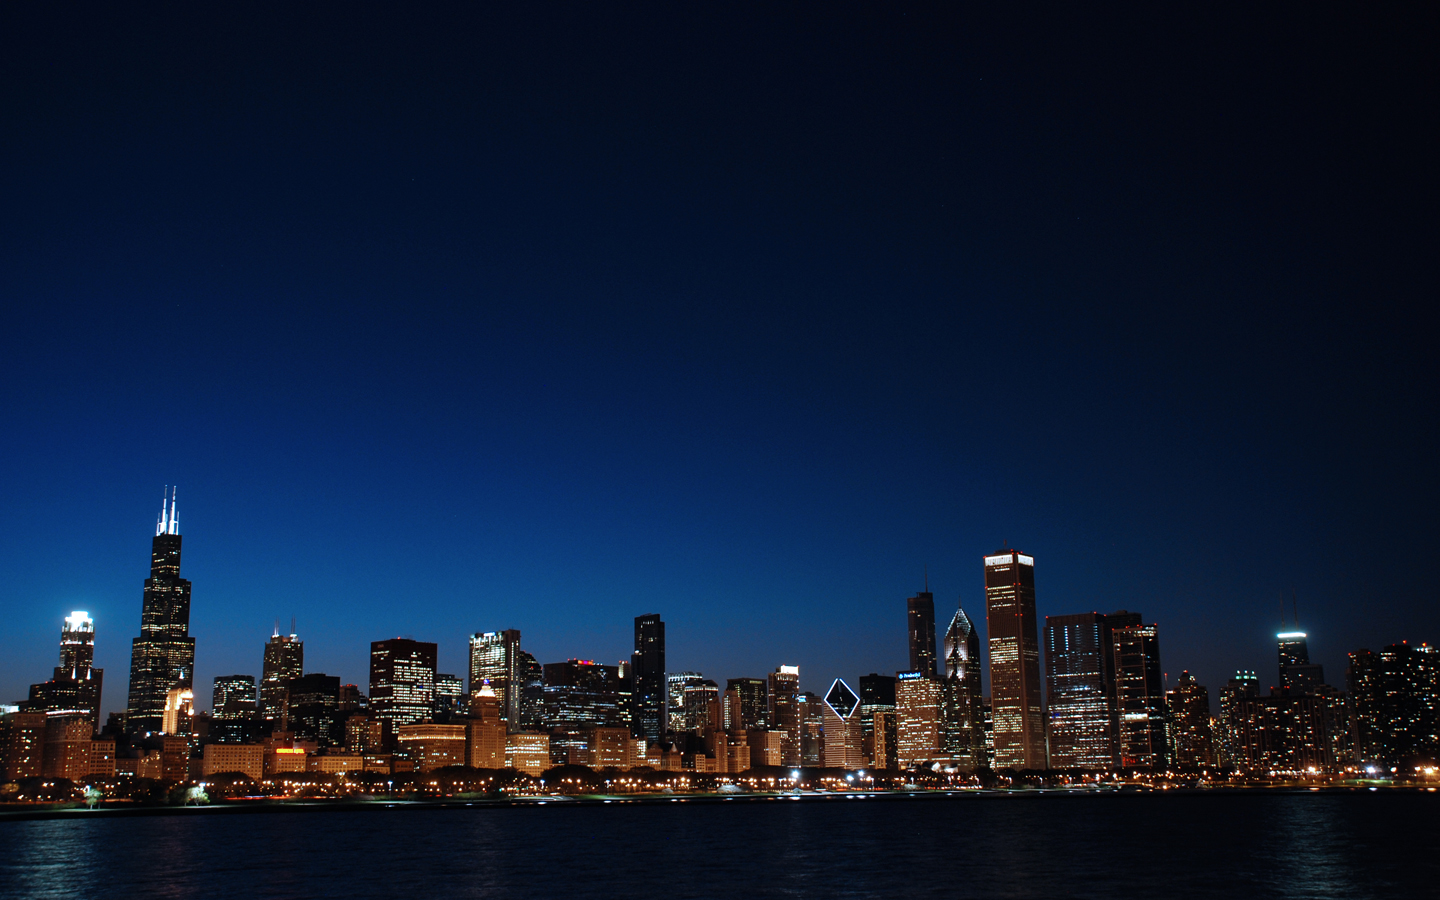 bk_040910_ChicagoSkyline_night